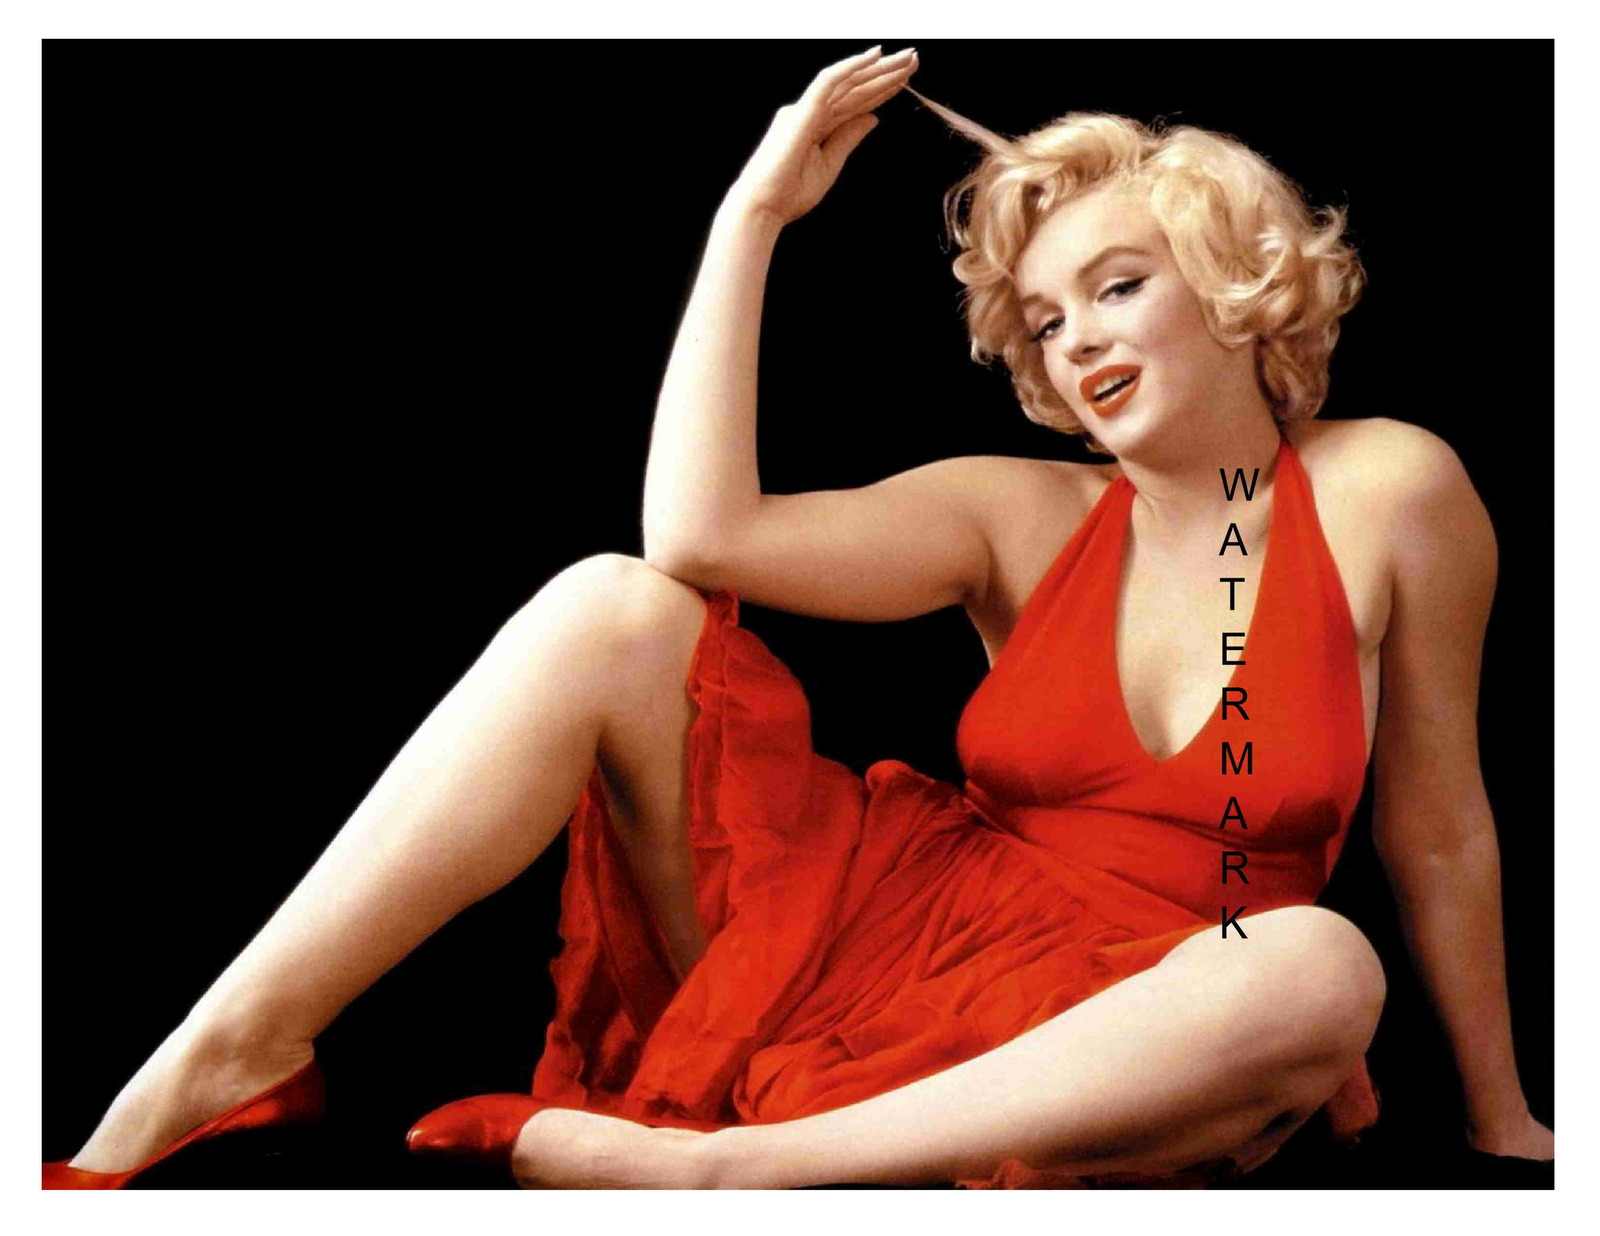 Marilyn Monroe Vintage in Red 13 x 10 inch Beautiful Pinup Giclee CANVAS Print